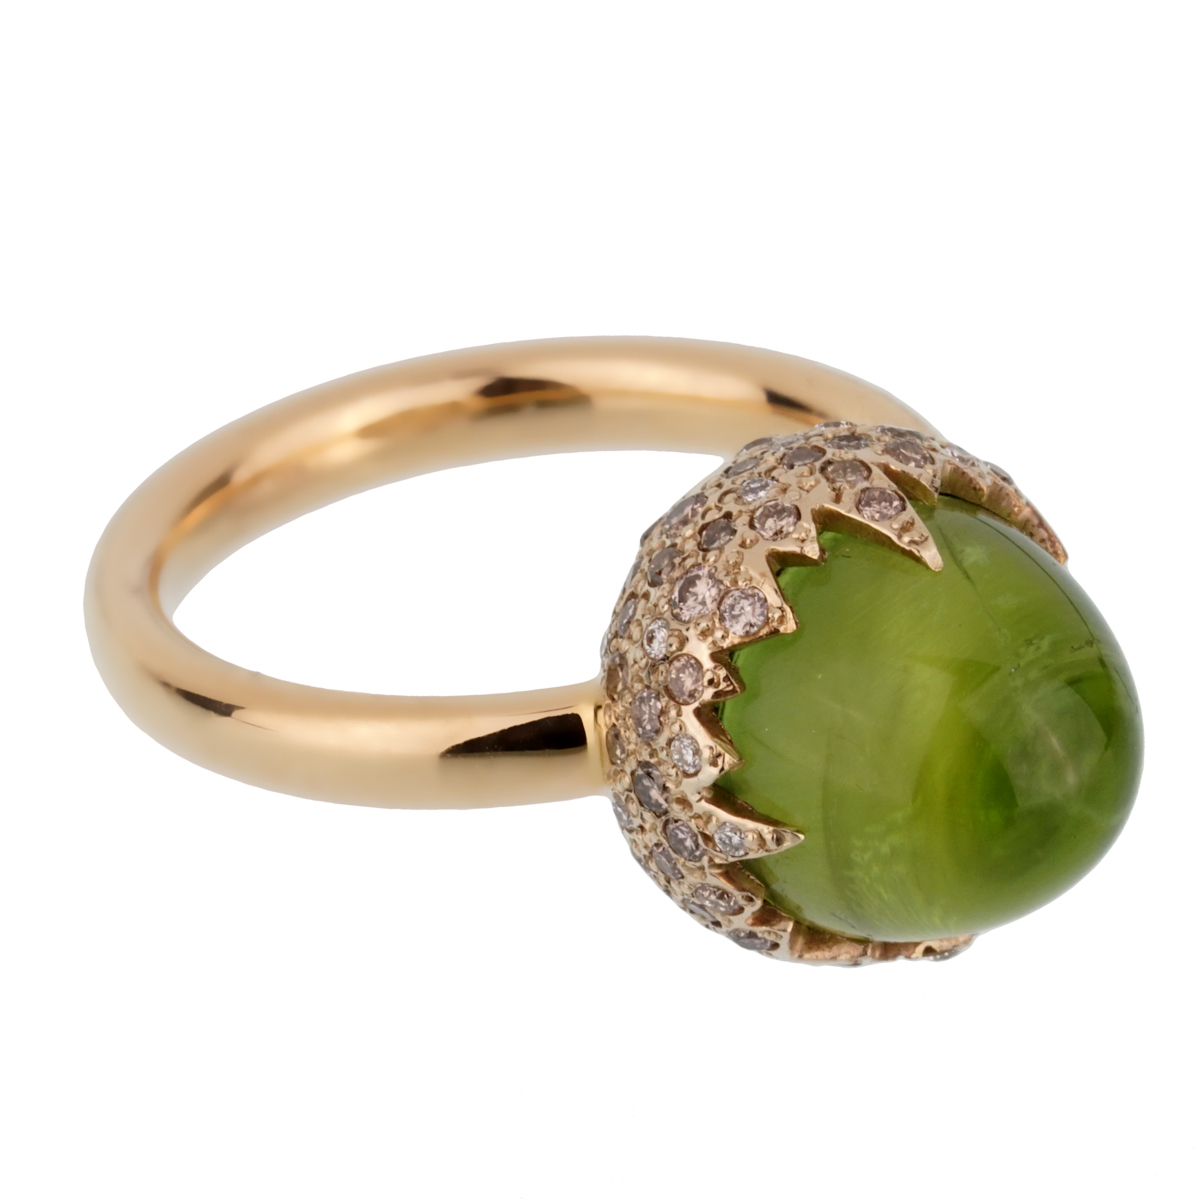 Pomellato Rose Gold 8 Carat Peridot Diamond Cocktail Ring